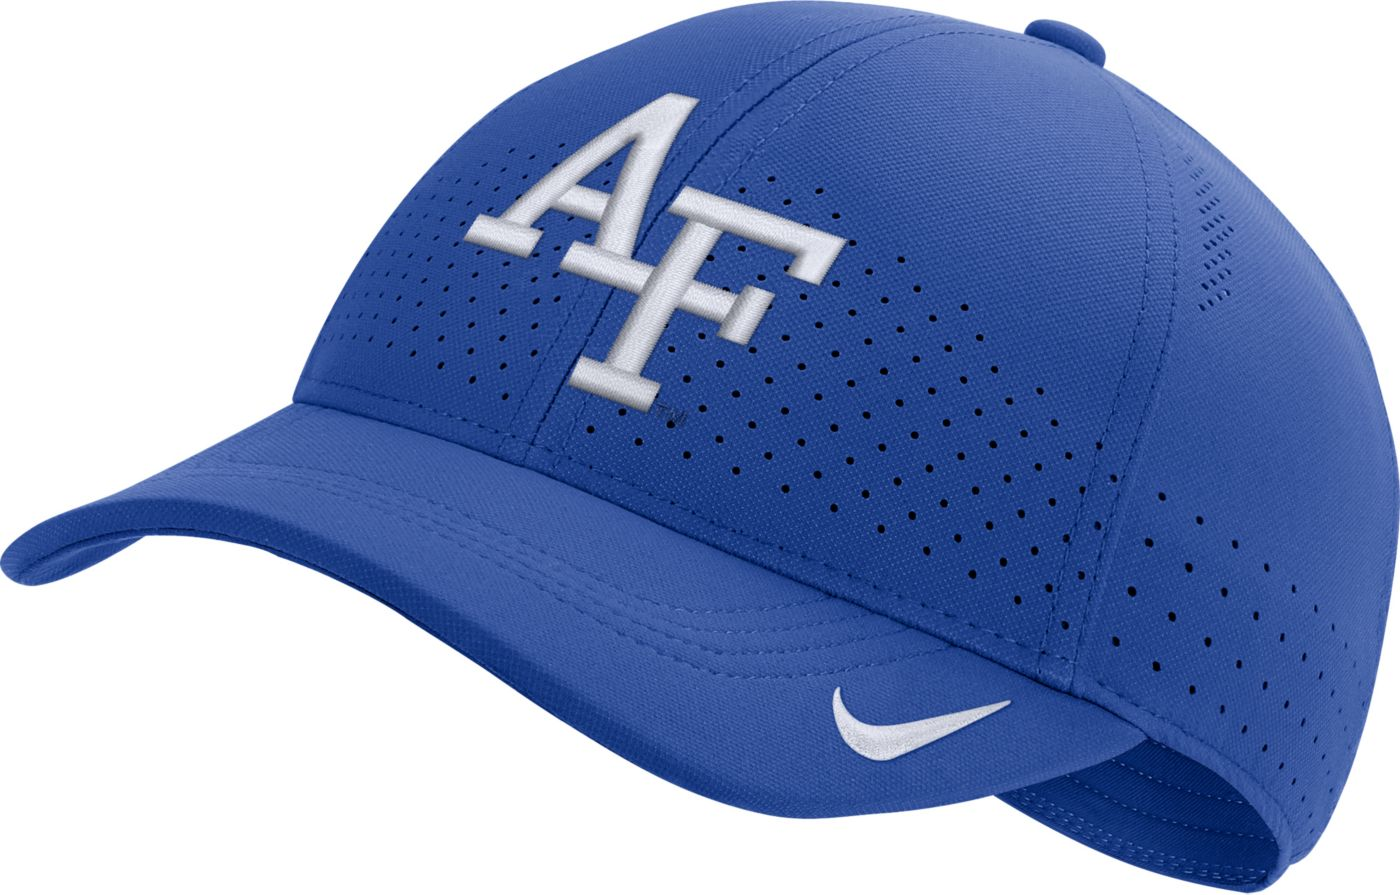 Nike Men's Air Force Falcons Blue Aerobill Classic99 Football Sideline Hat